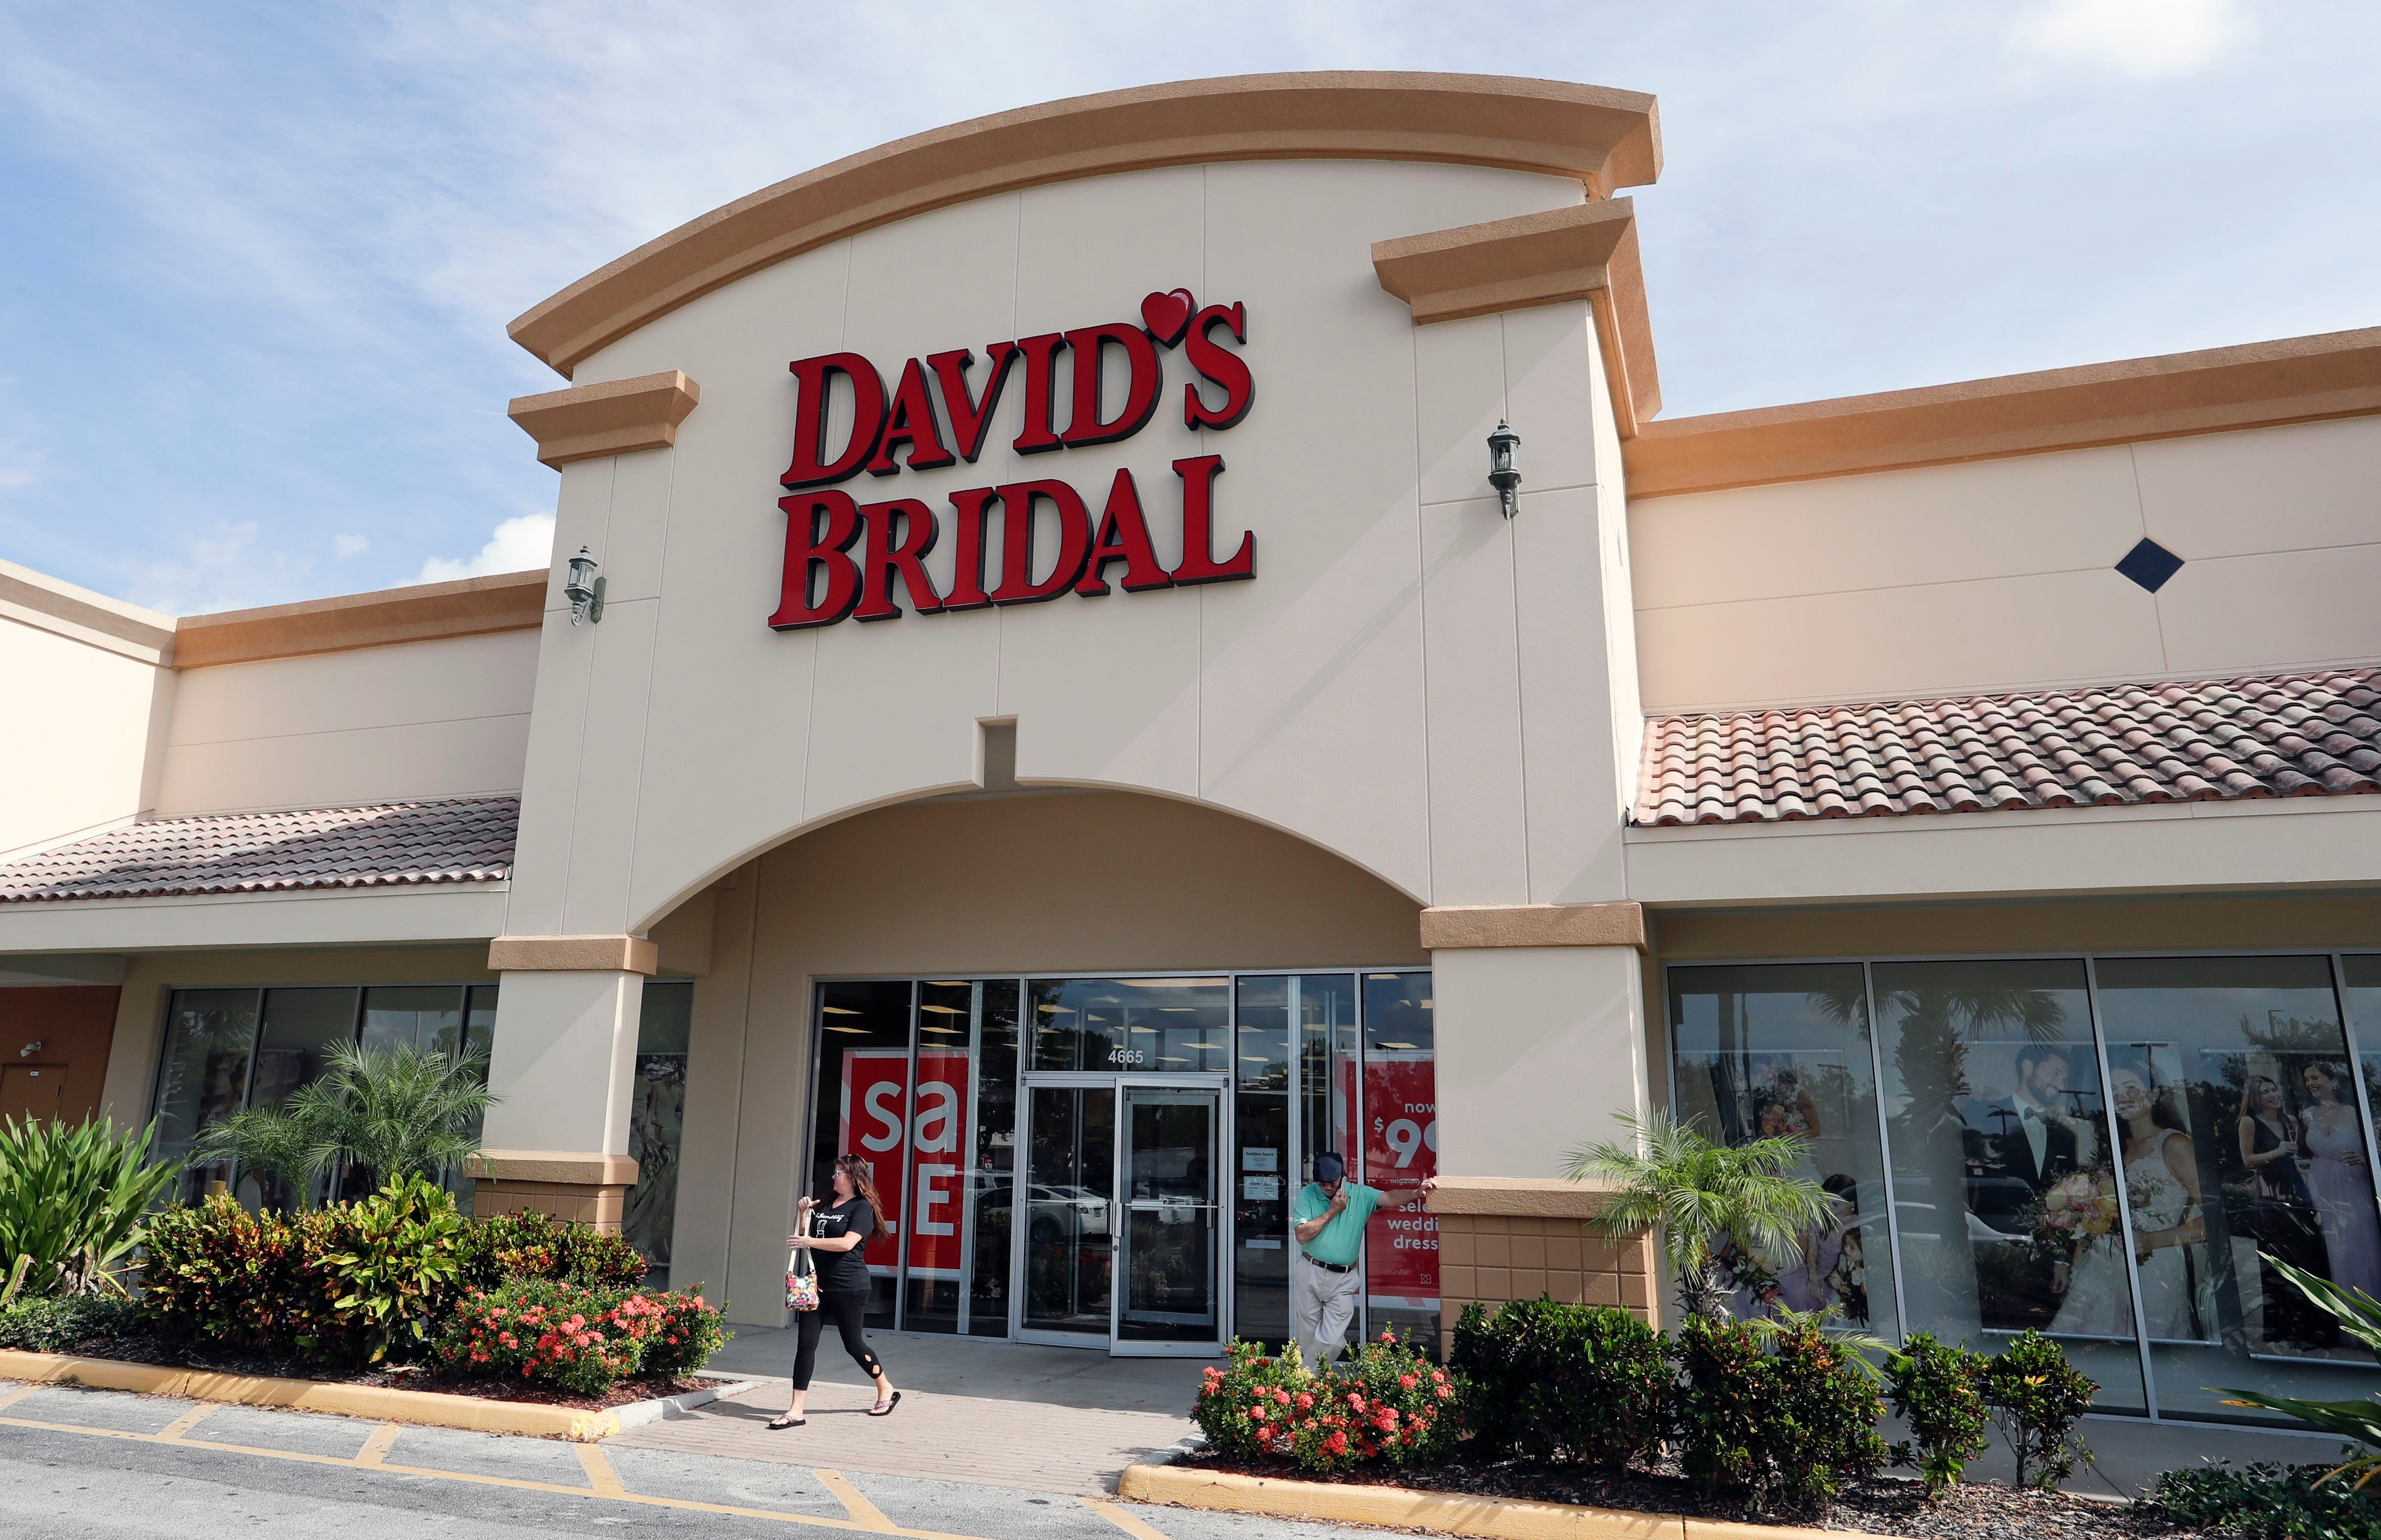 The entrance to a David's Bridal store is seen, in Orlando, Fla. David's Bridal is filing for bankruptcy protection but there is no danger for customers who have ordered dresses because operations are continuing as normal while the wedding and prom retailer restructuresDavids Bridal Bankruptcy, Orlando, USA - 19 Nov 2018